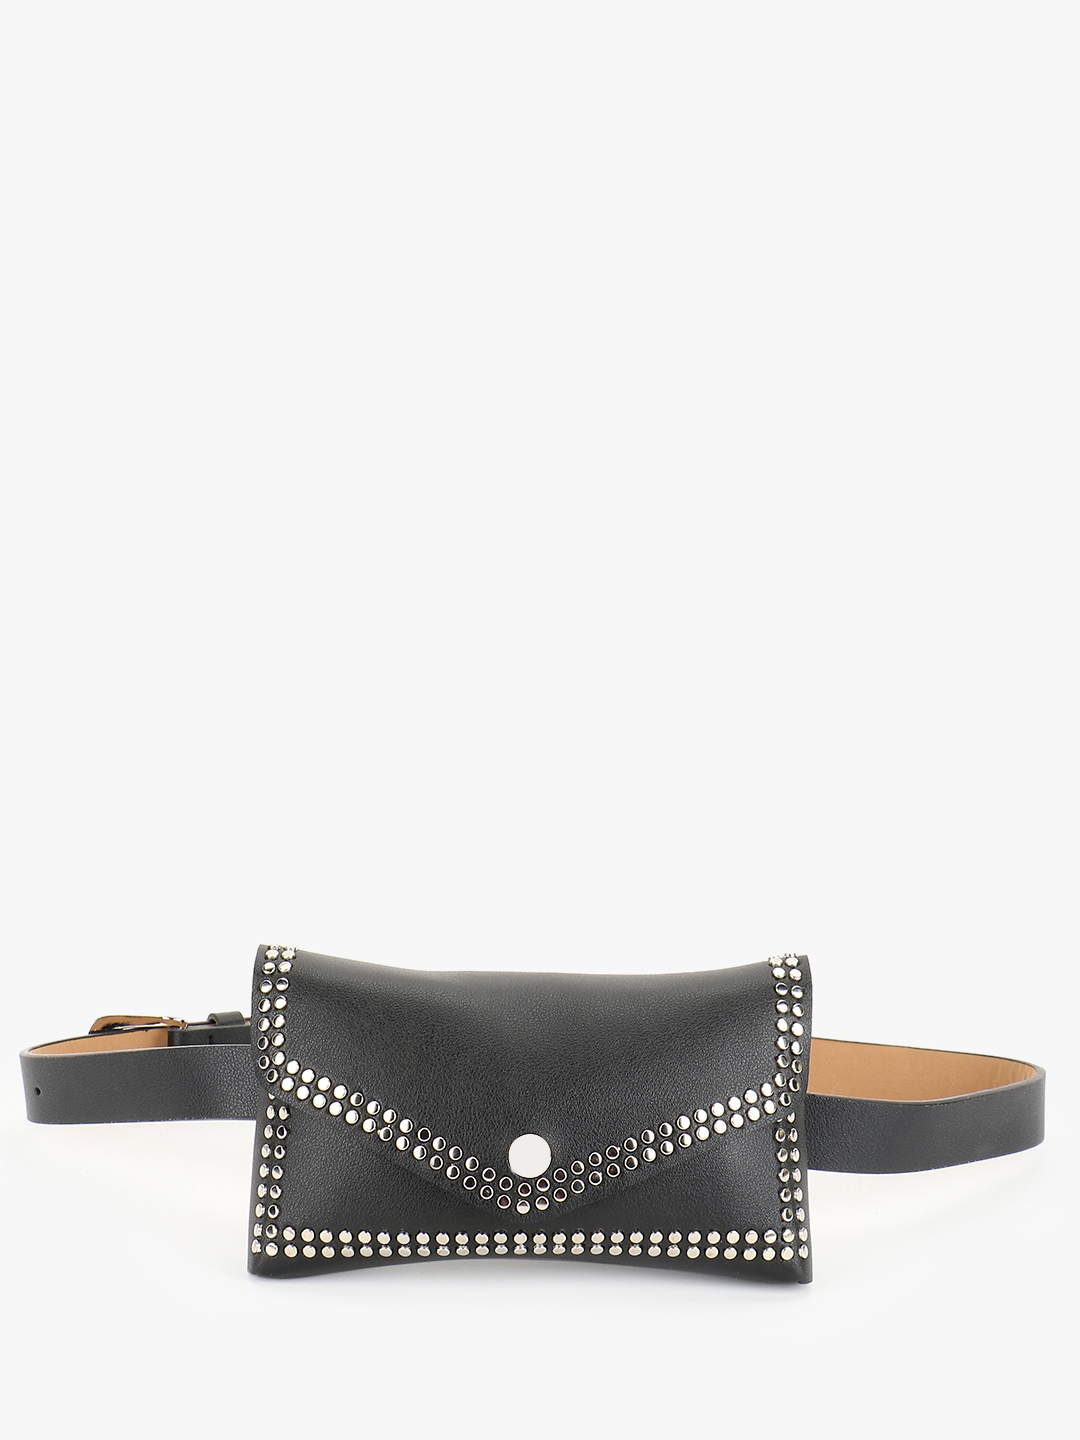 Origami Lily Black Stud Embellished Bum Bag 1